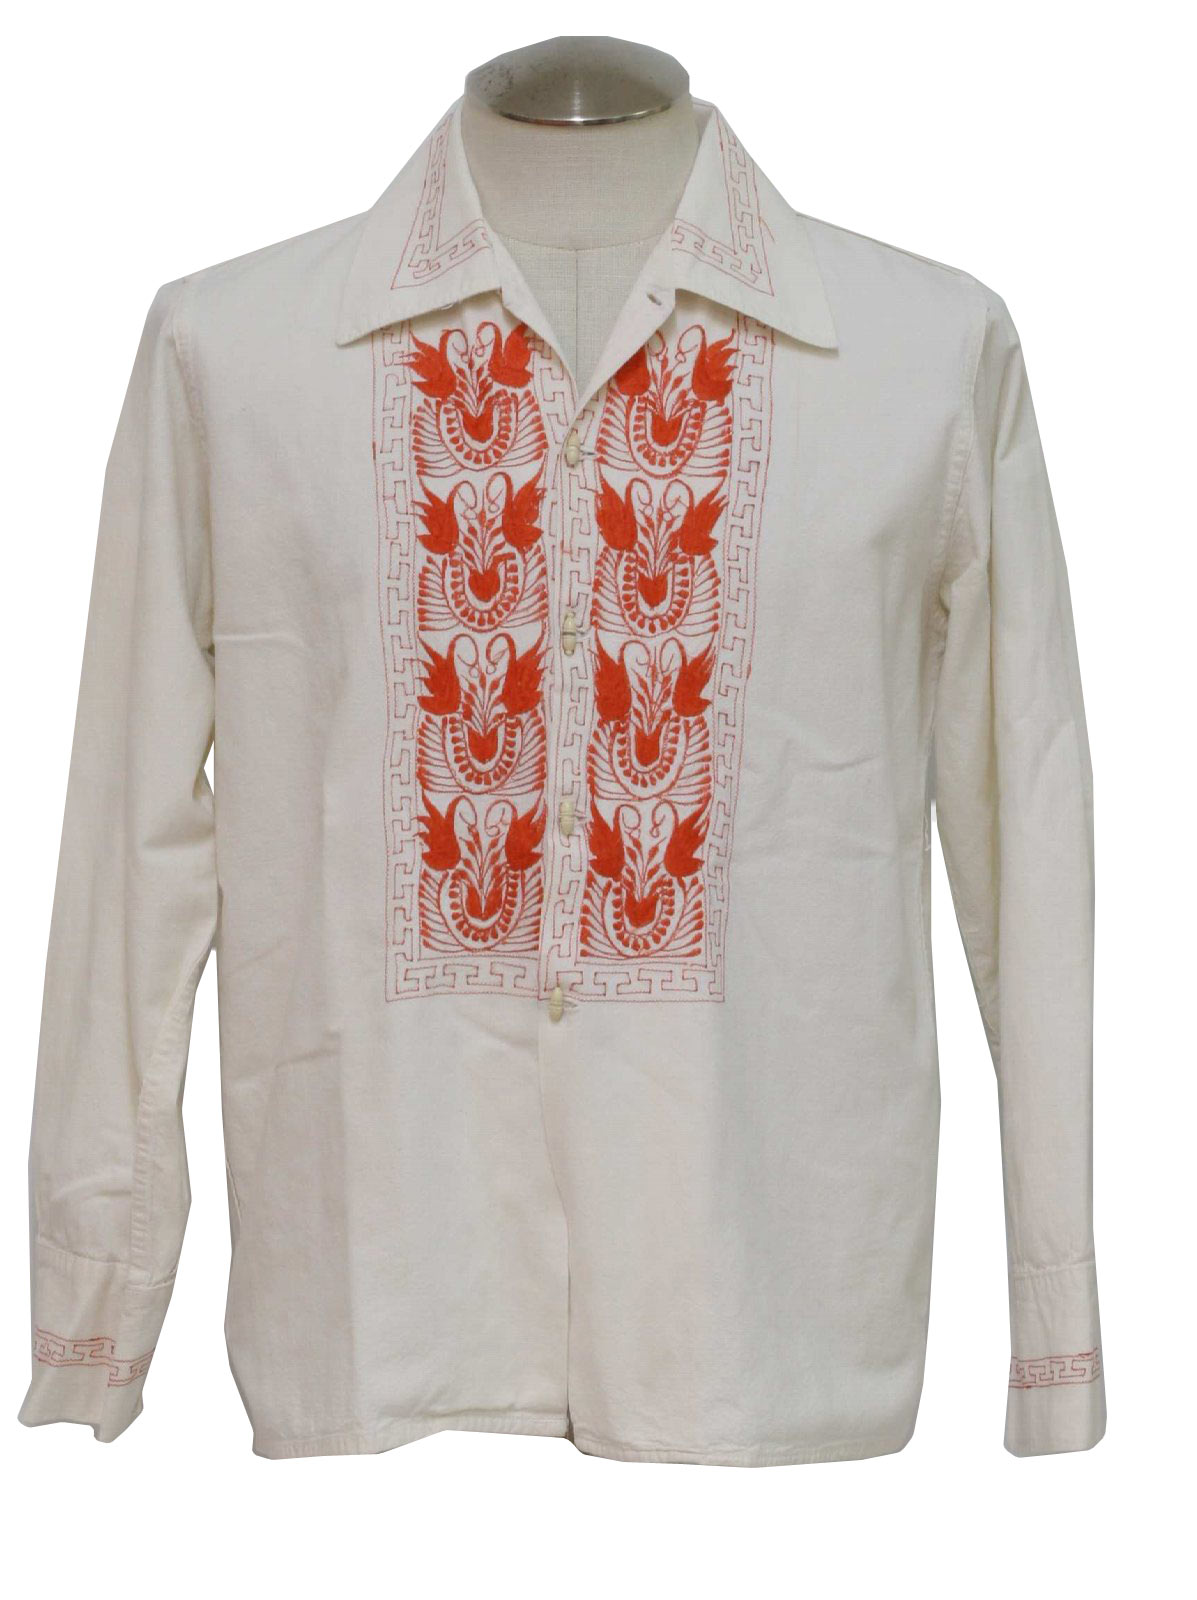 60s Vintage Hippie Shirt No Label Mens White Coral Cotton Muslin Mexican Wedding Style With Longsleeves Slightly Fitted Sides